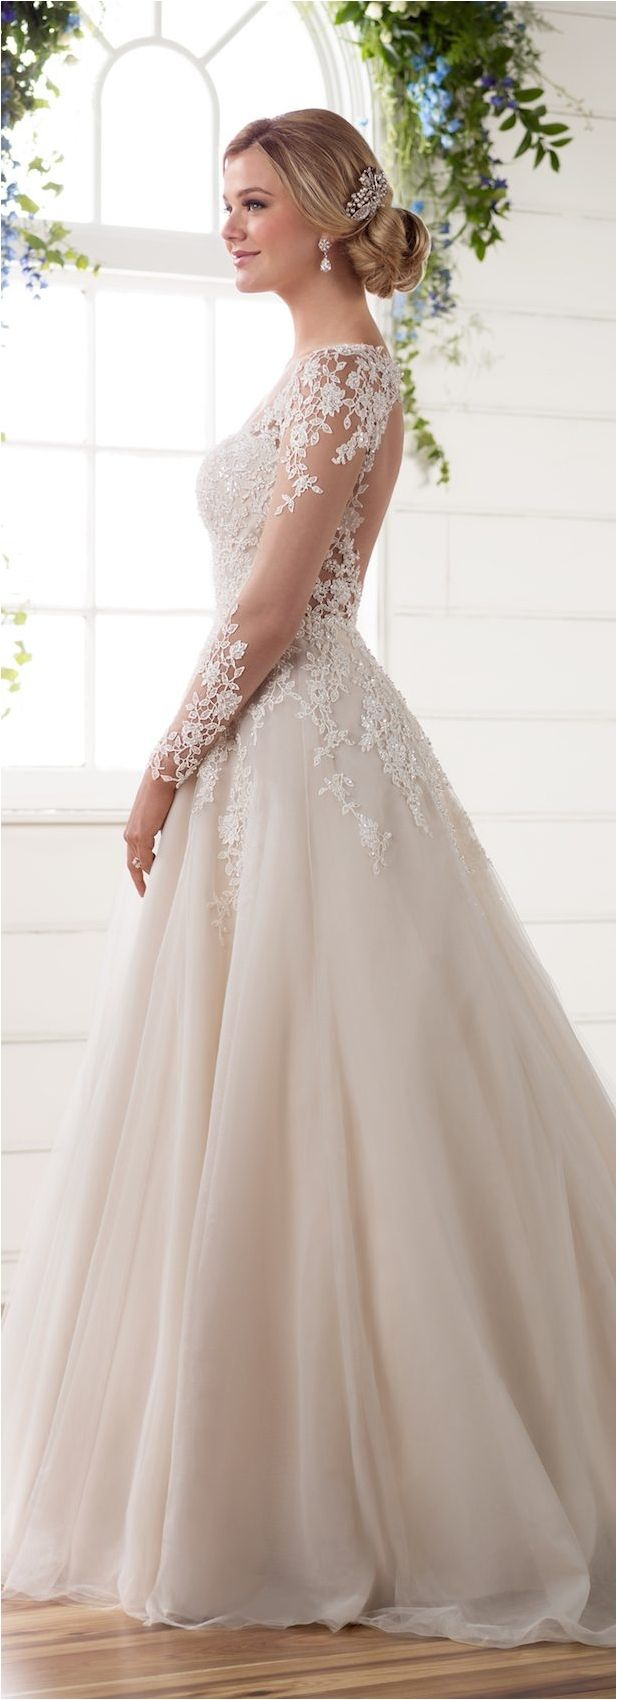 Perfect Inspiration For Lace Wedding Dresses 2017 https://bridalore.com/2017/04/13/perfect-inspiration-for-lace-wedding-dresses-2017/